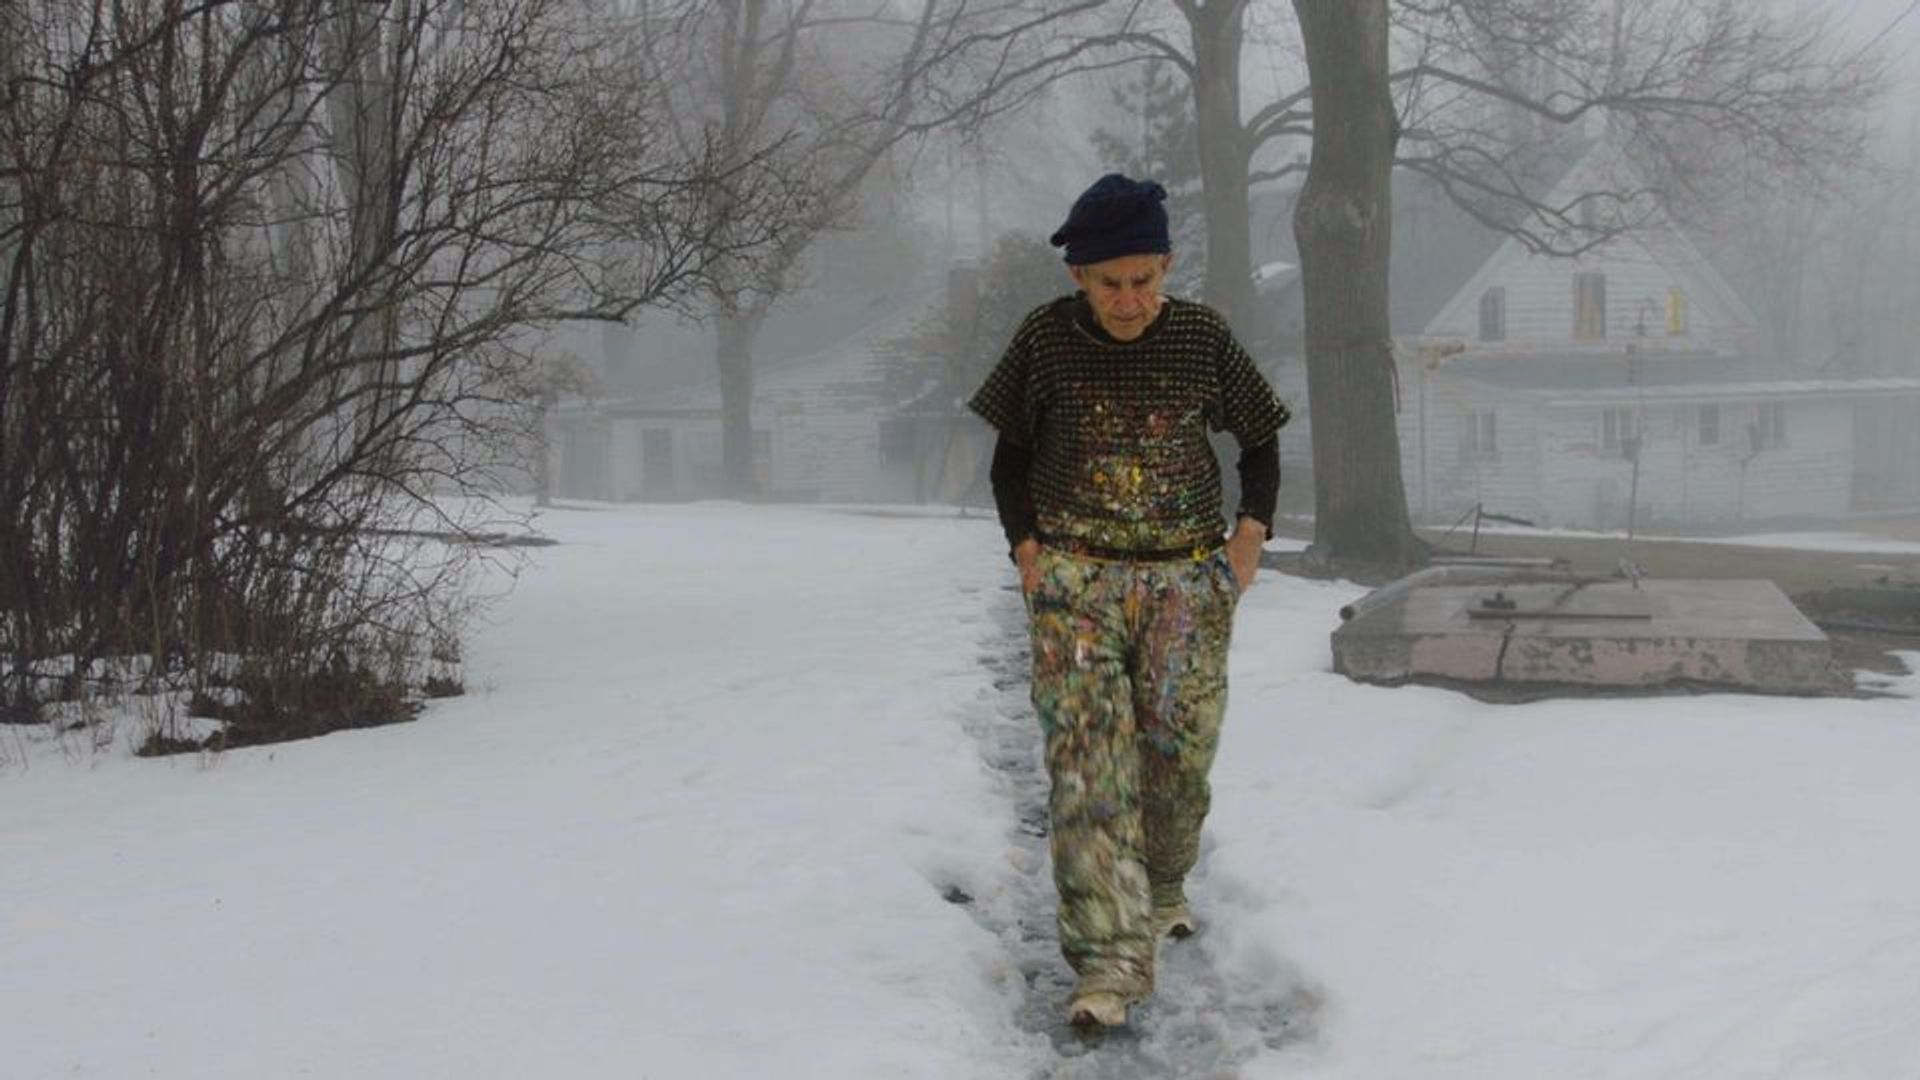 Painter Larry Poons walking to his studio in The Price of Everything, directed by Nathaniel Kahn Courtesy of HBO Documentary Films